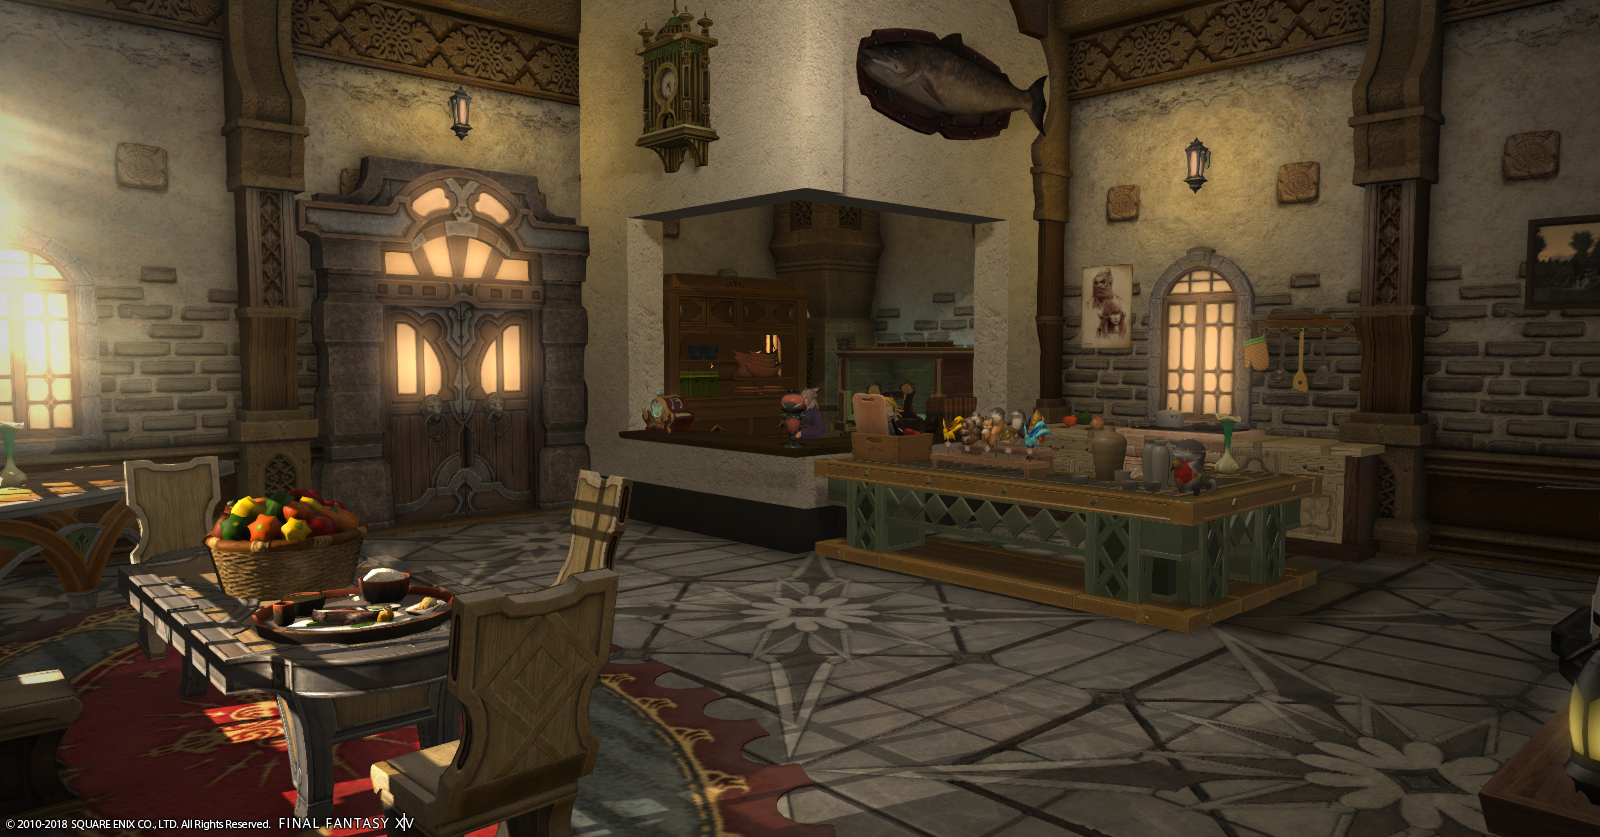 The Ground Floor to my FFXIV In-Game house. I turned it into a Cafe!